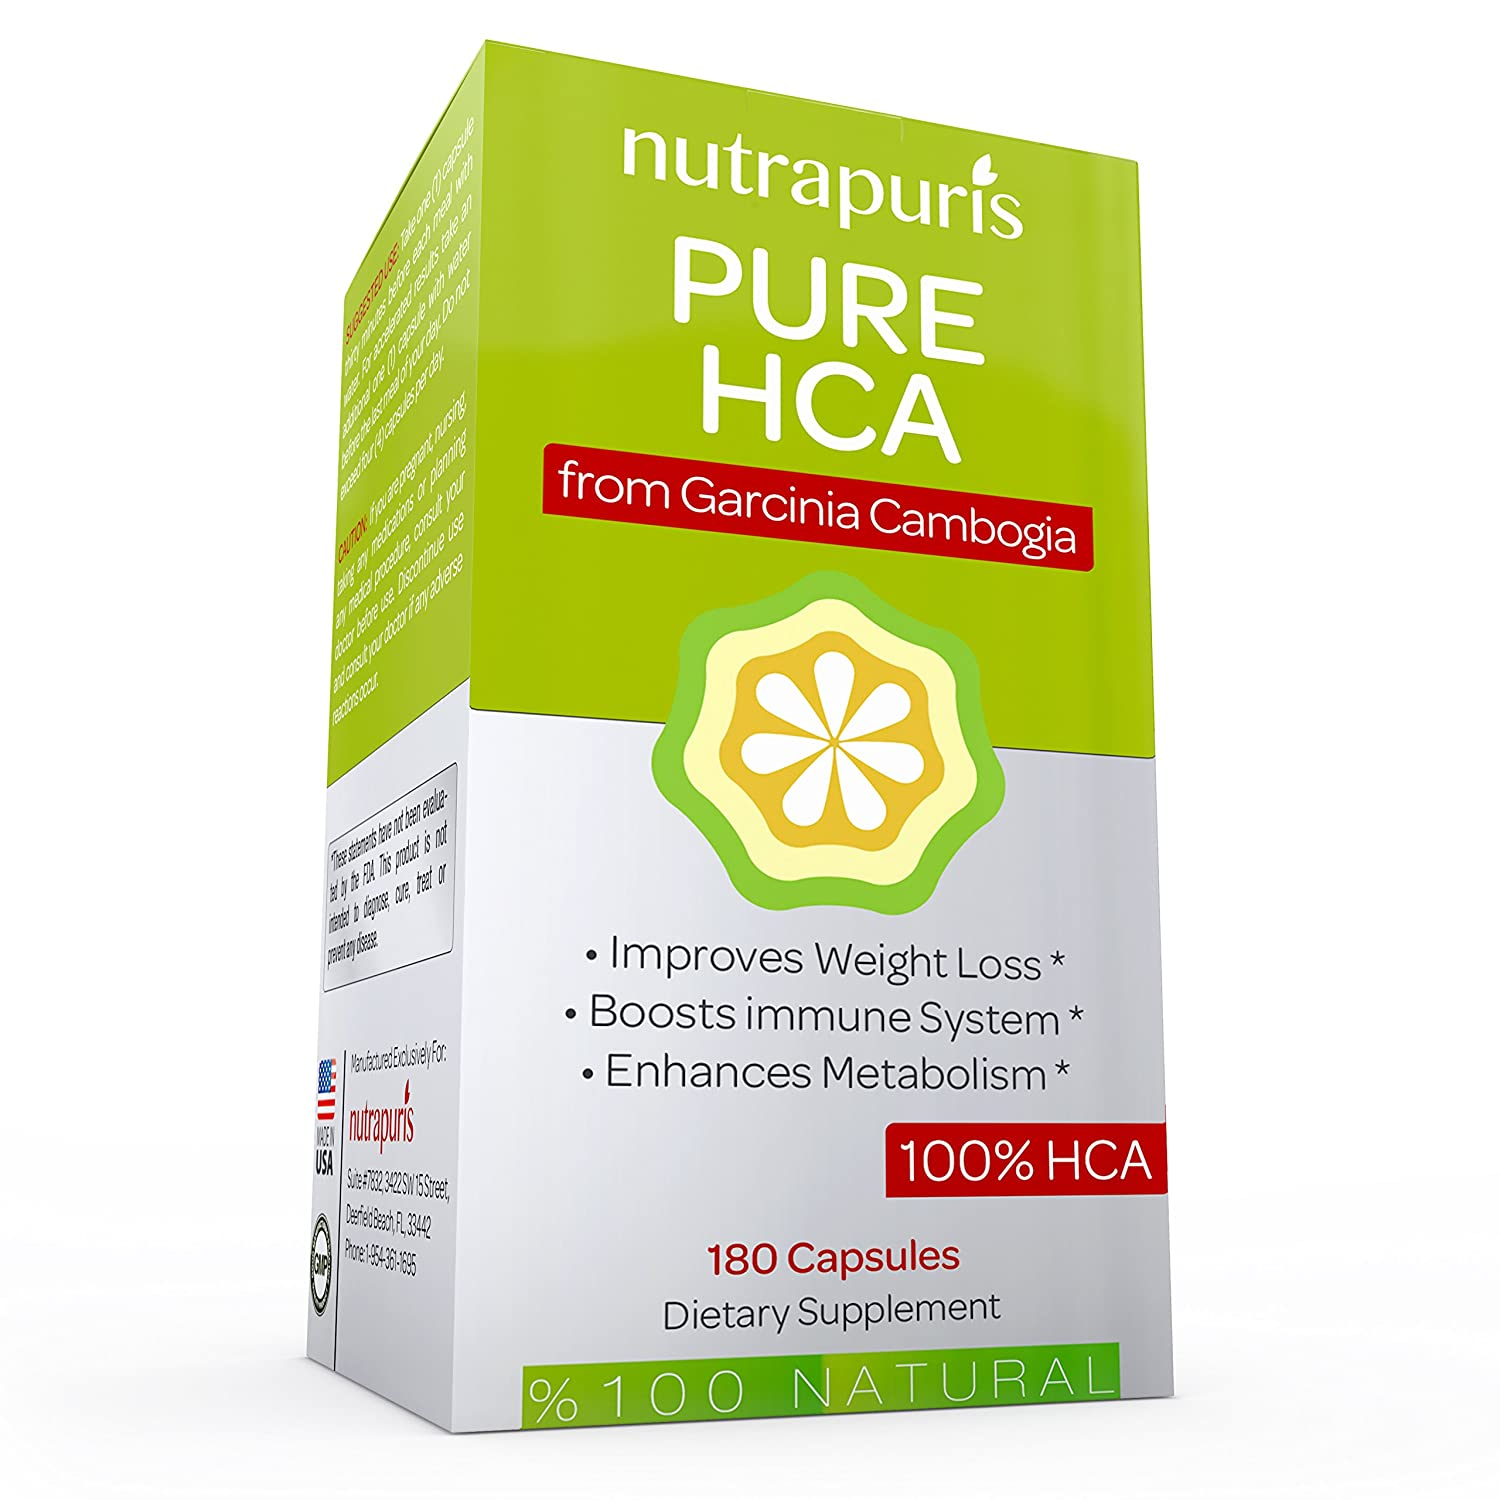 Natural herbal teas to lose weight